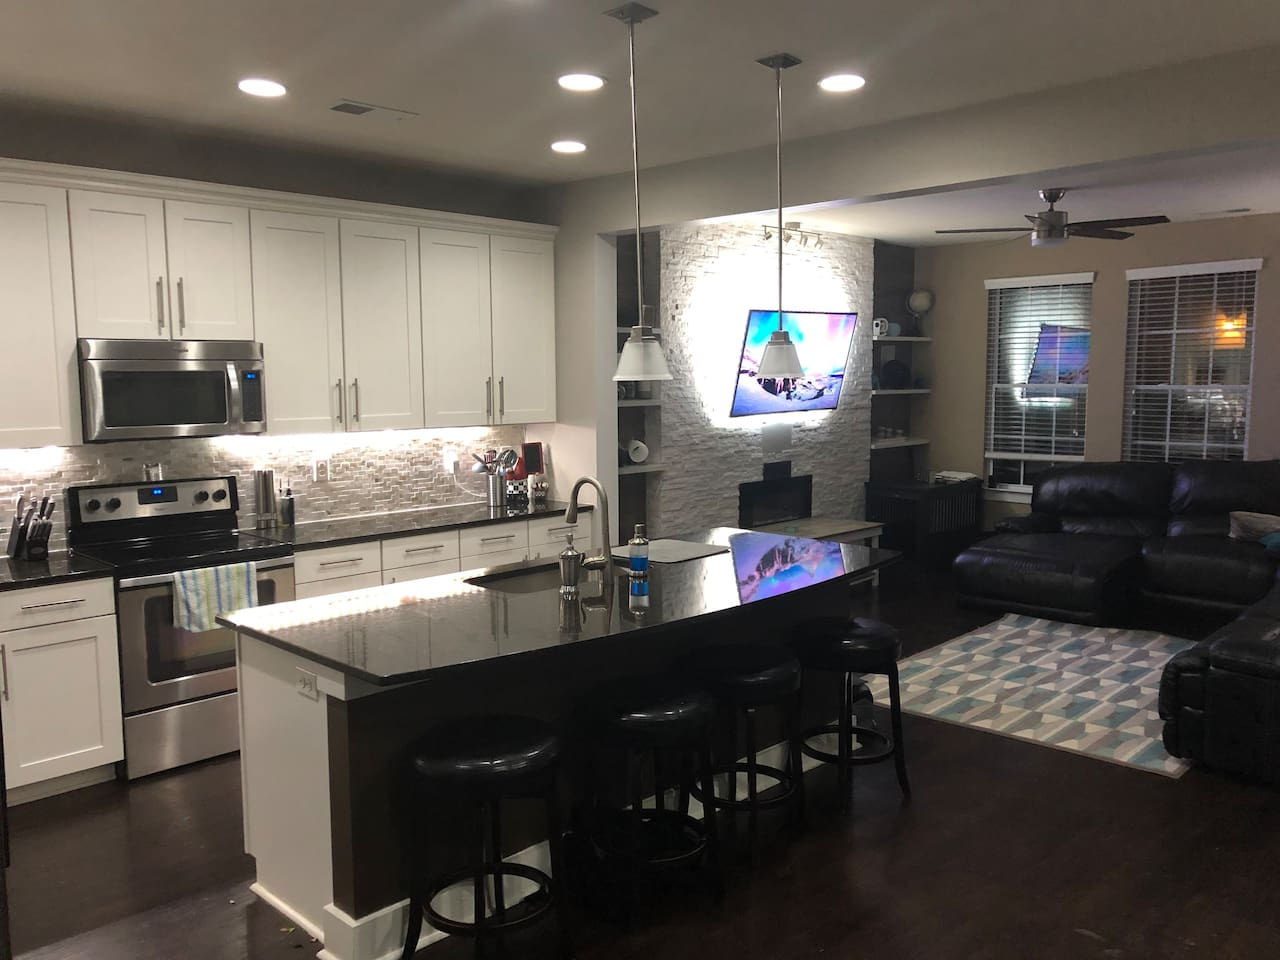 This is the kitchen and living room...the lights are customizable (see other kitchen photos)